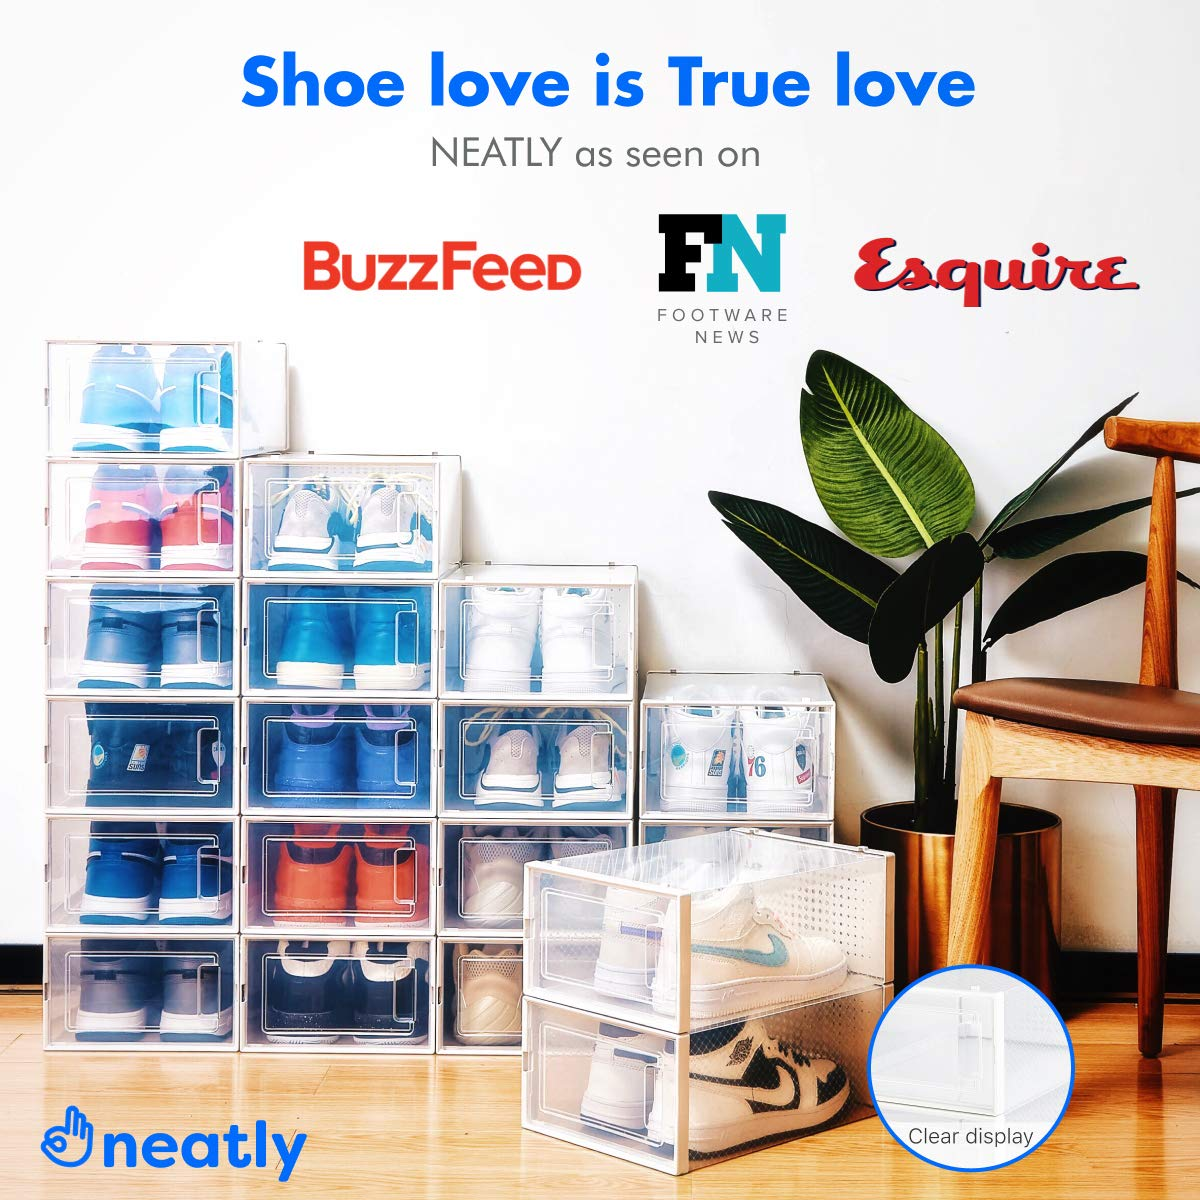 6 Collapsible Cube Storage Bins for Mens Shoes Women Shoes Sneakers Stackable Shoe Racks for Closets and entryway Shoe Storage Cabinet /ÉLEVER NEATLY Shoe Organizer Set of 6, Medium